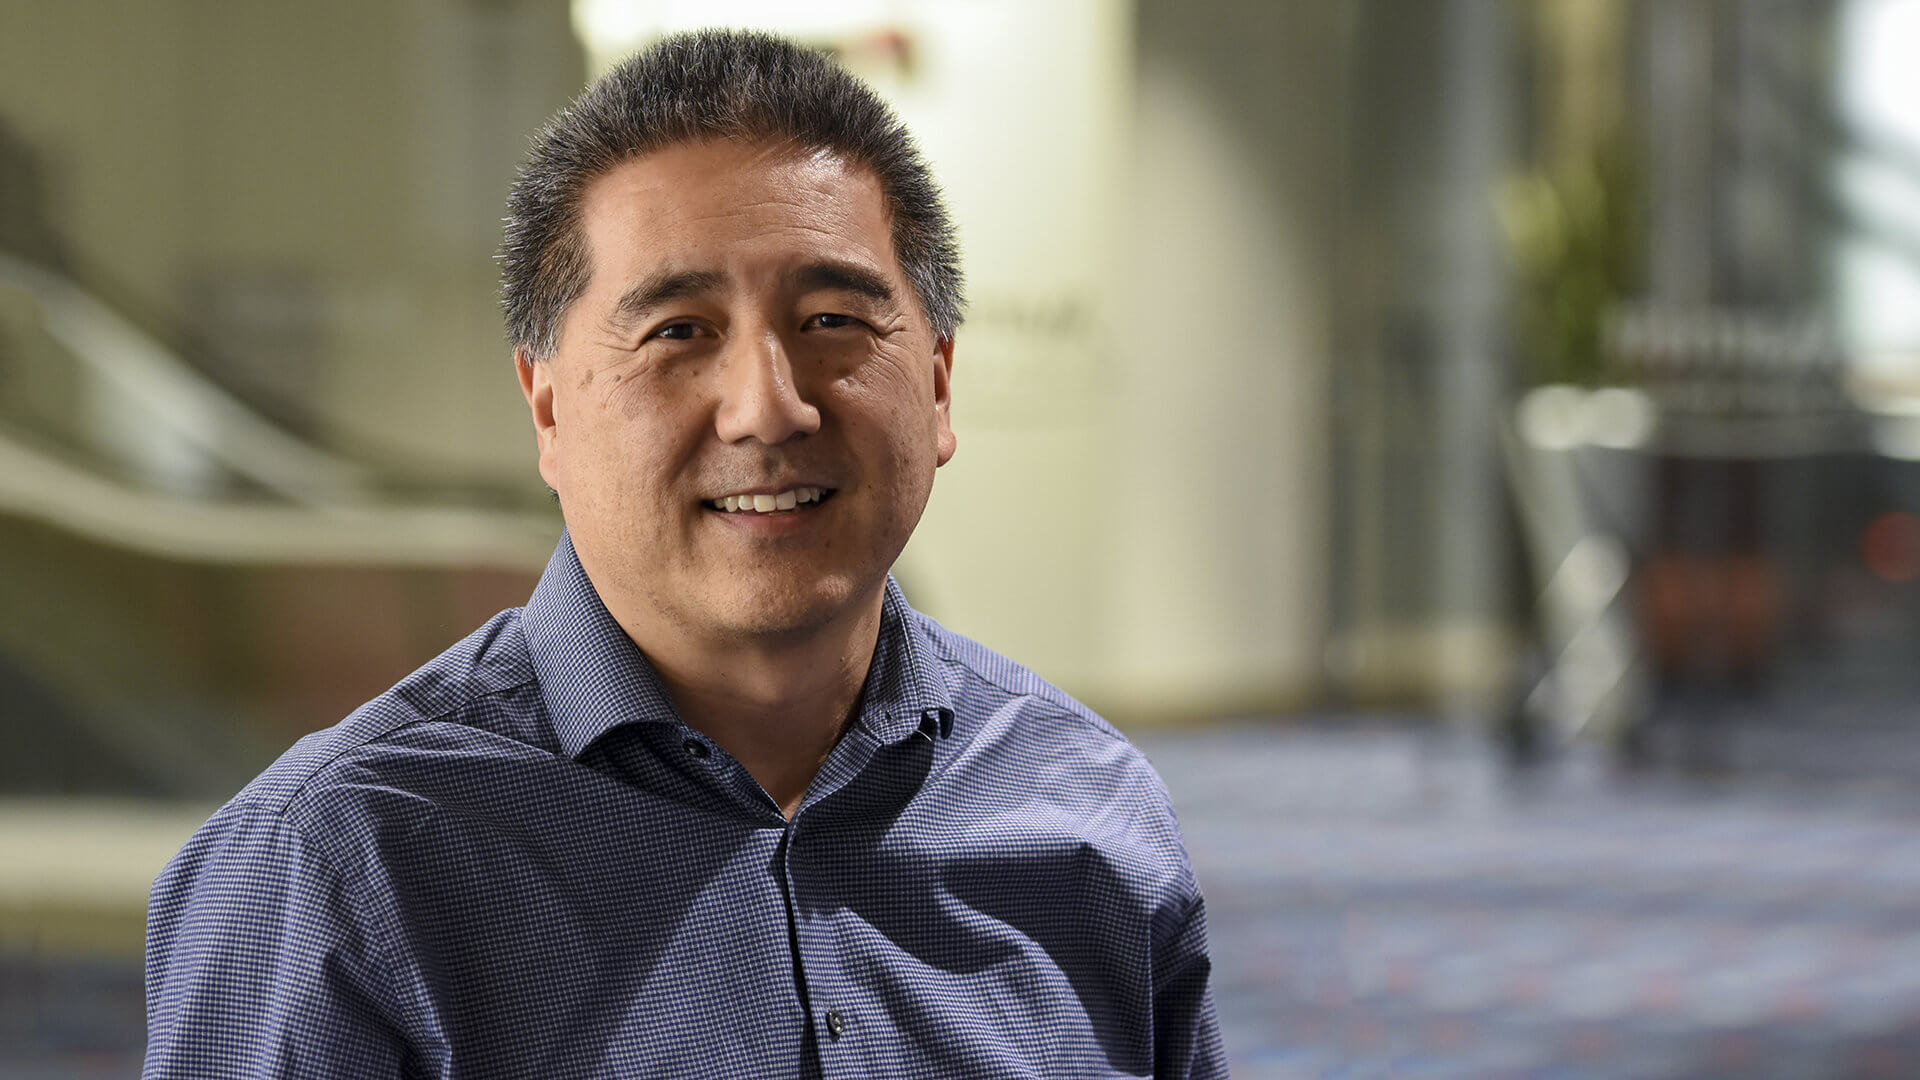 Sacramento Mandarins' Jim Tabuchi elected to DCI Board of Directors